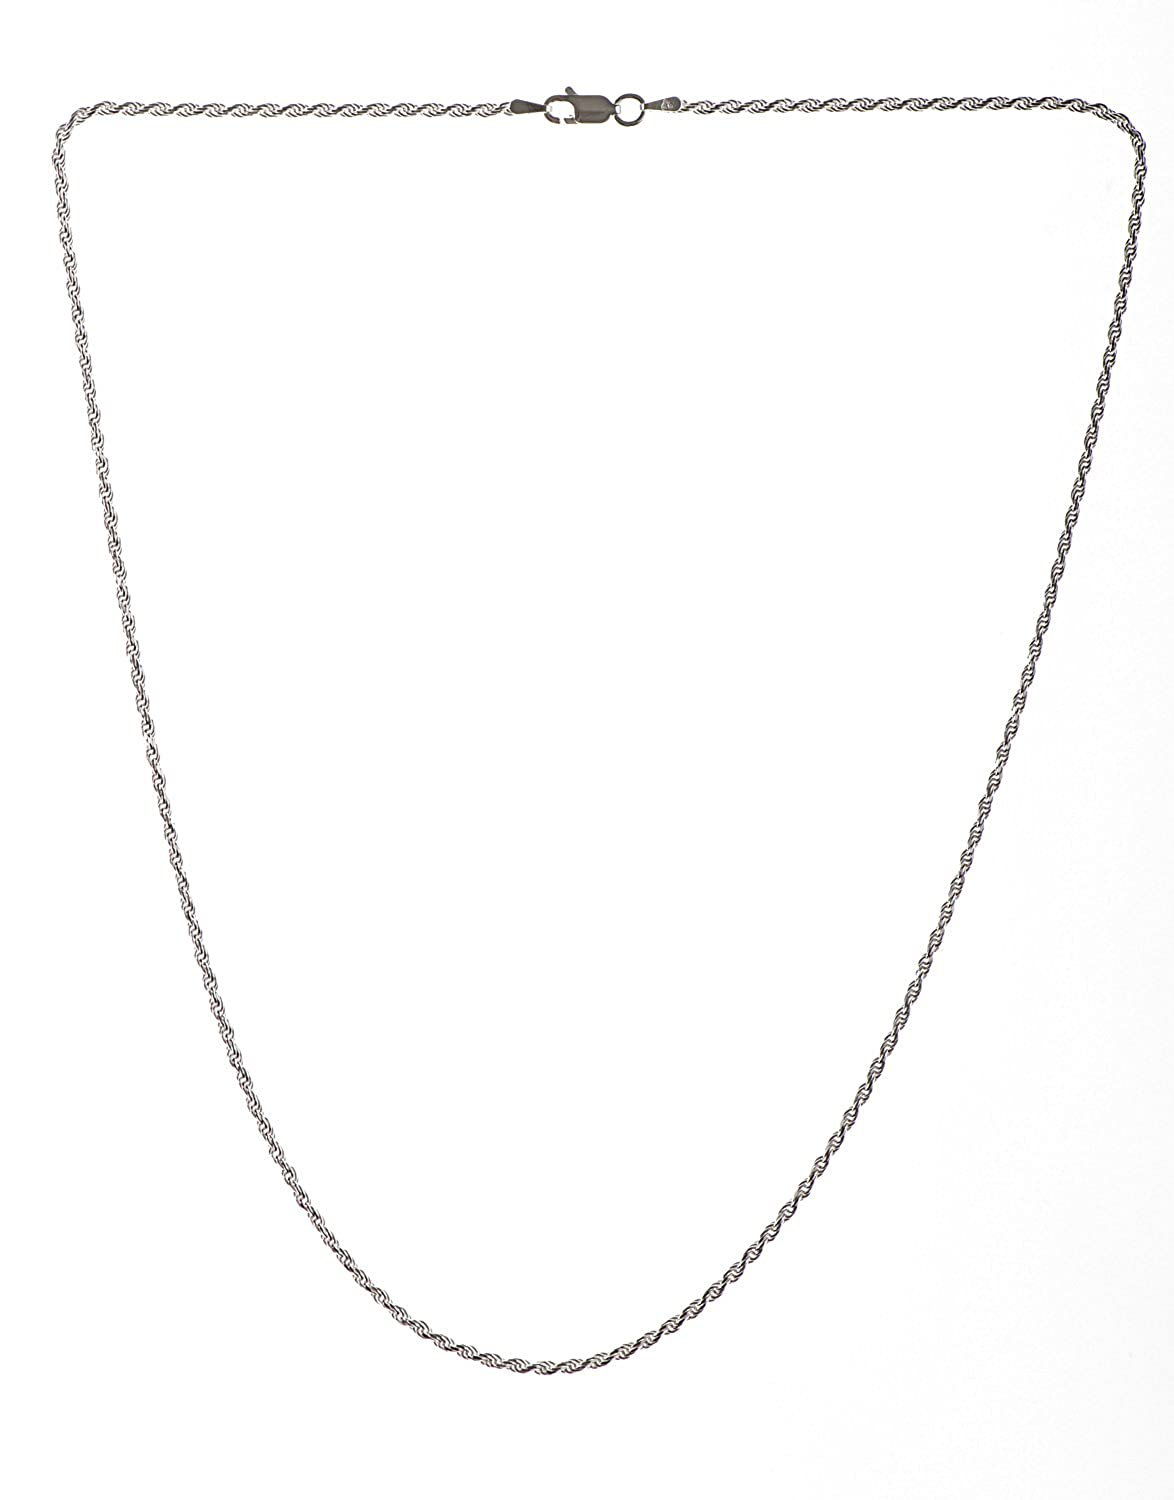 Adara 9ct White Gold Rope Chain of 50.8cm